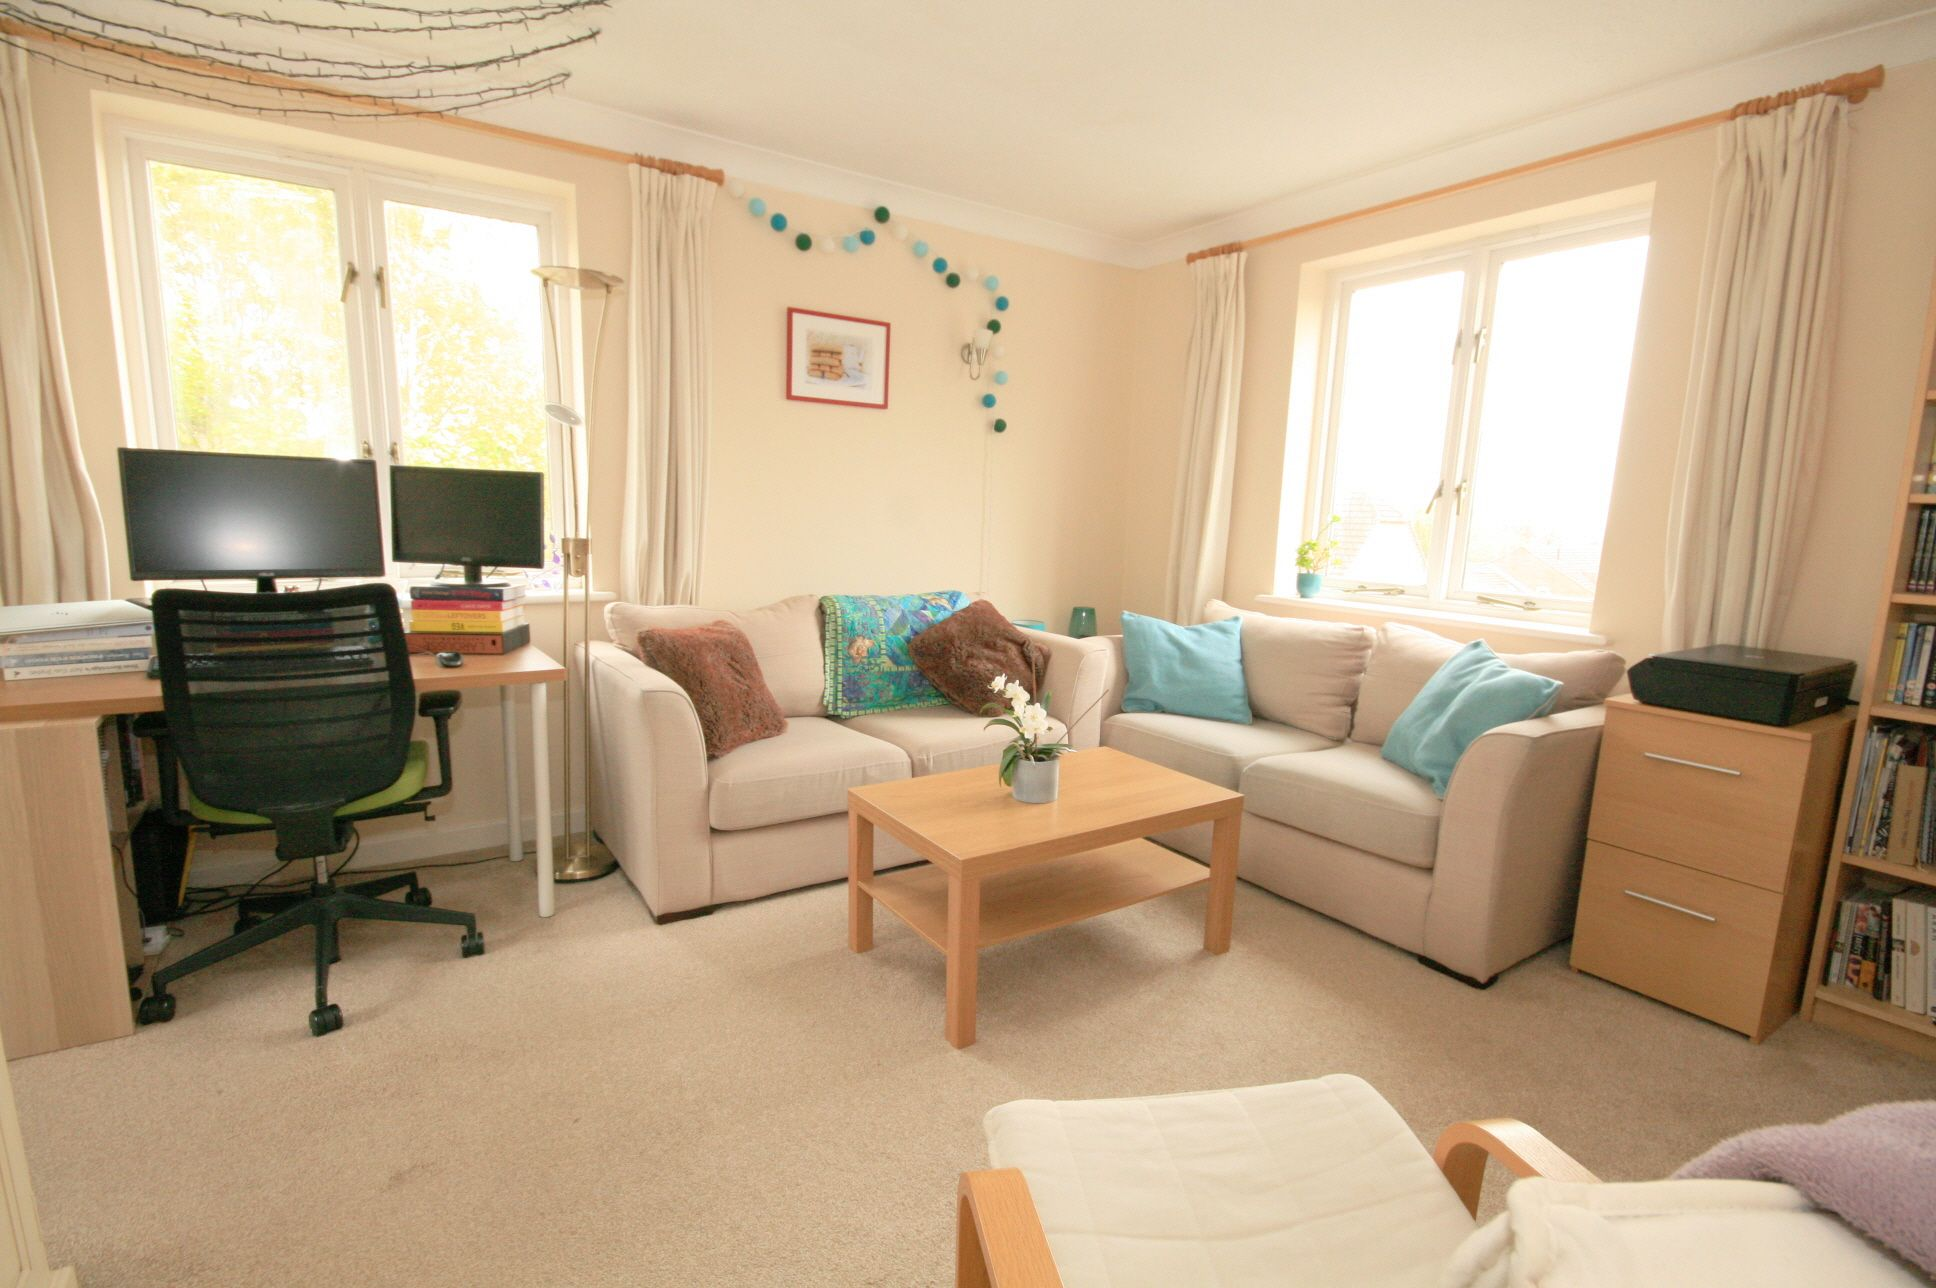 1 Bedroom Apartment Flat/apartment For Sale - Photograph 2